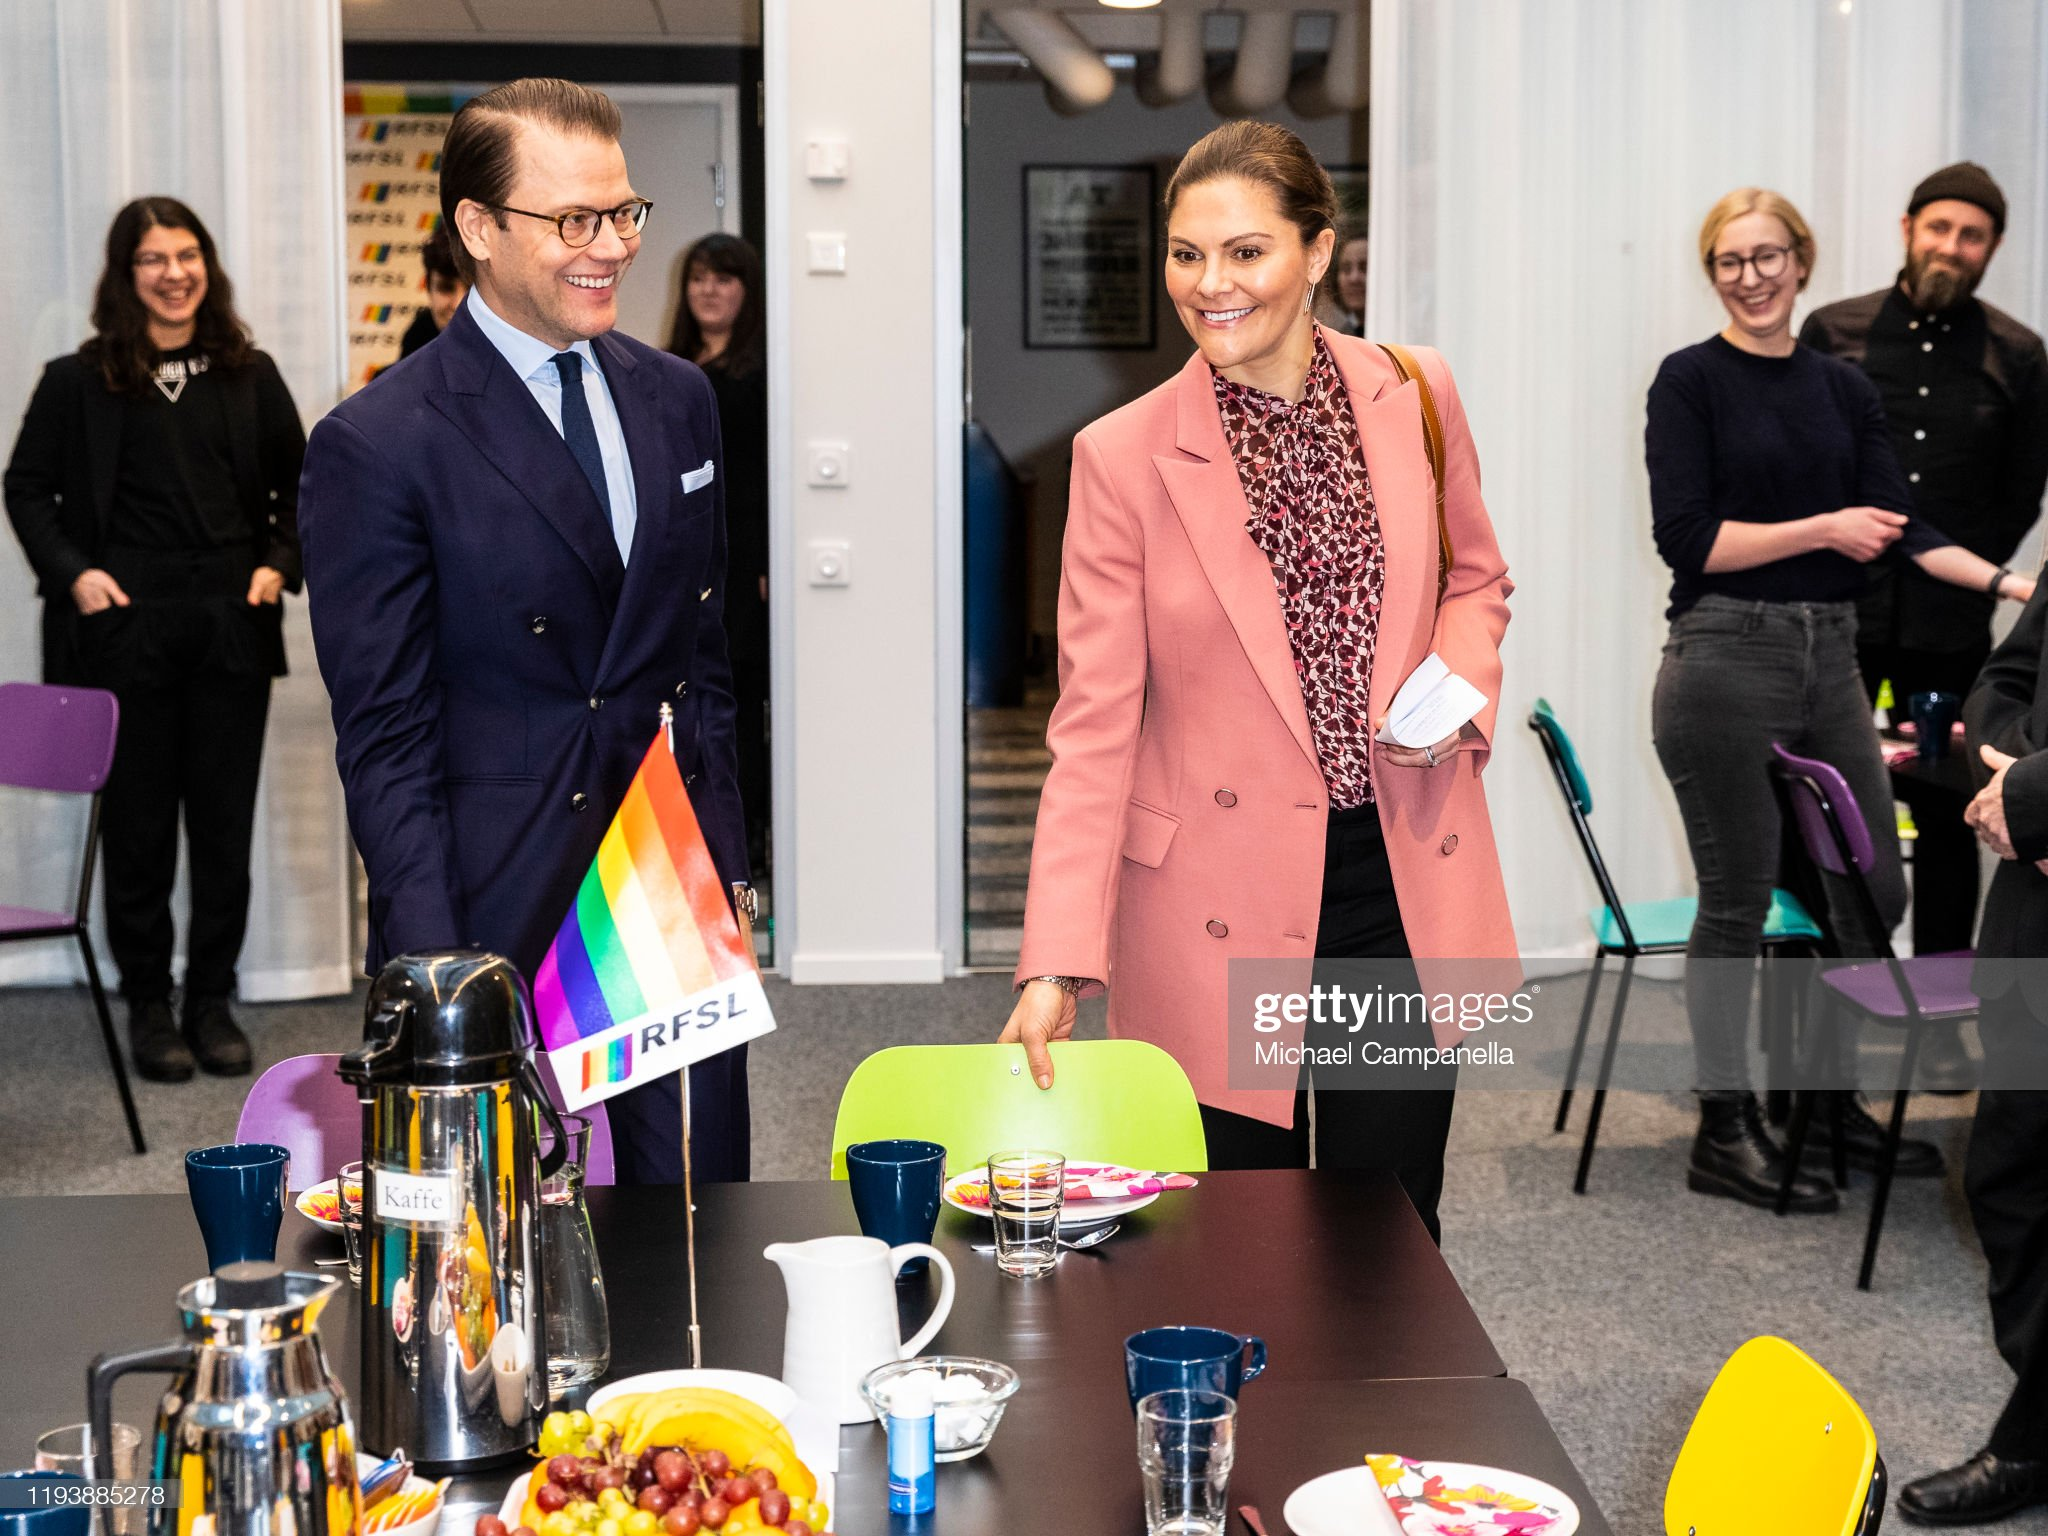 crown-princess-victoria-of-sweden-and-prince-daniel-of-sweden-visit-picture-id1193885278